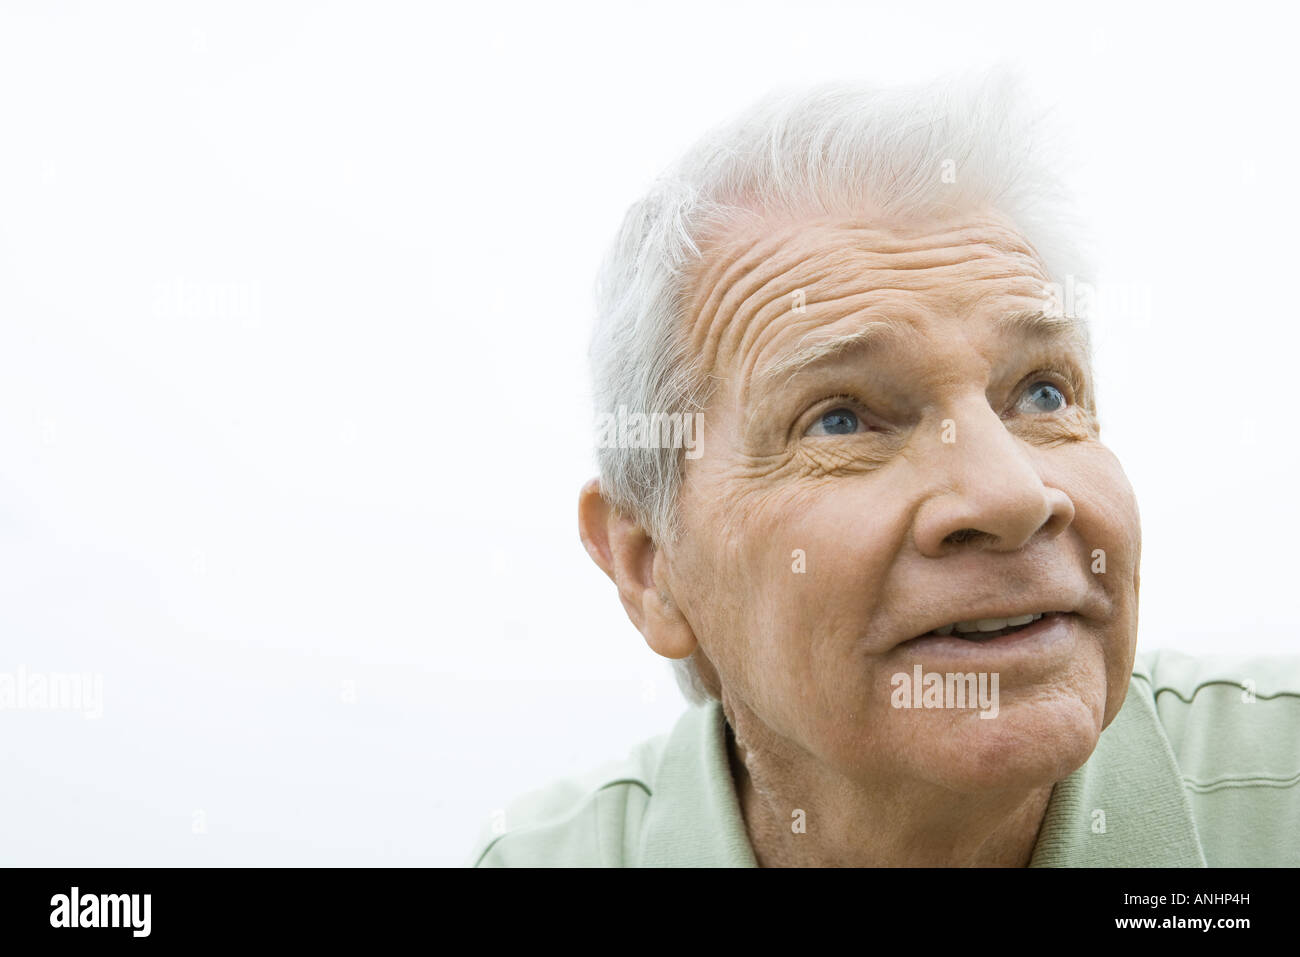 Senior man looking up, smiling, portrait - Stock Image